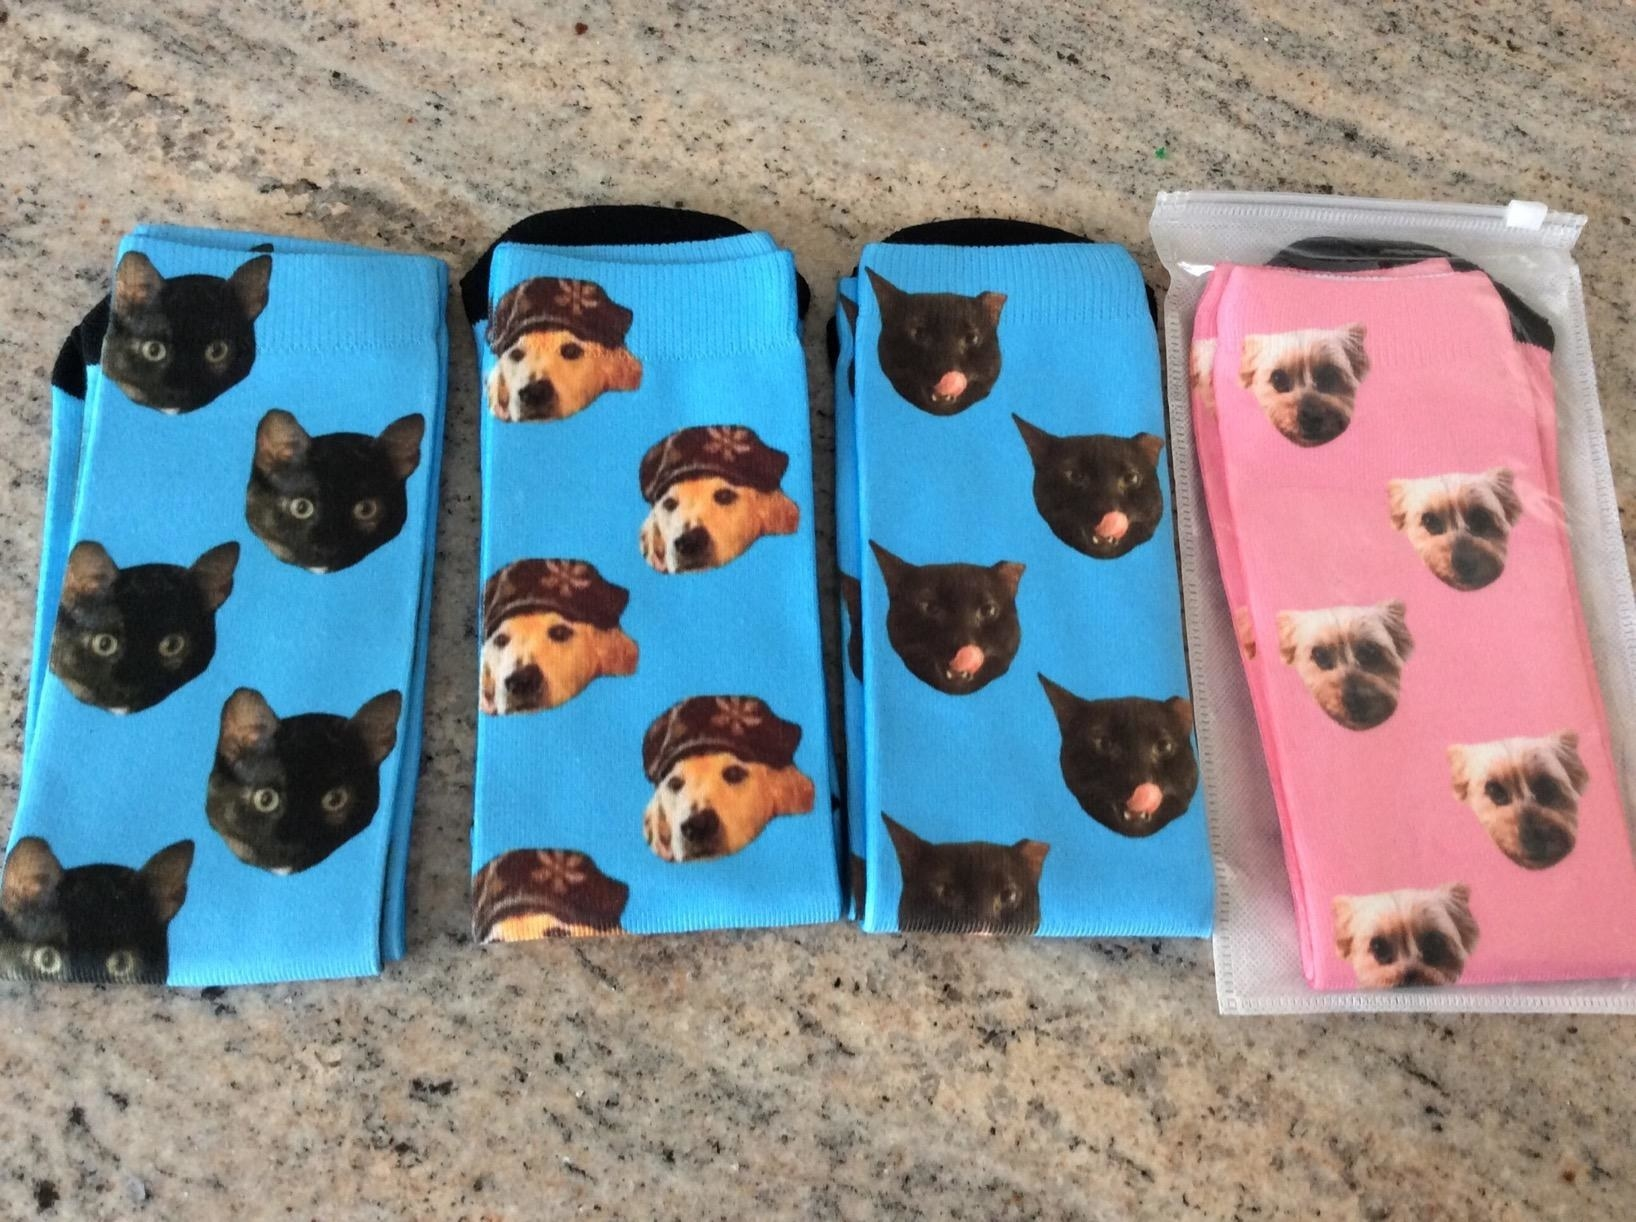 The socks in blue and pink, with photo images of dog and cat faces printed in multiples on them